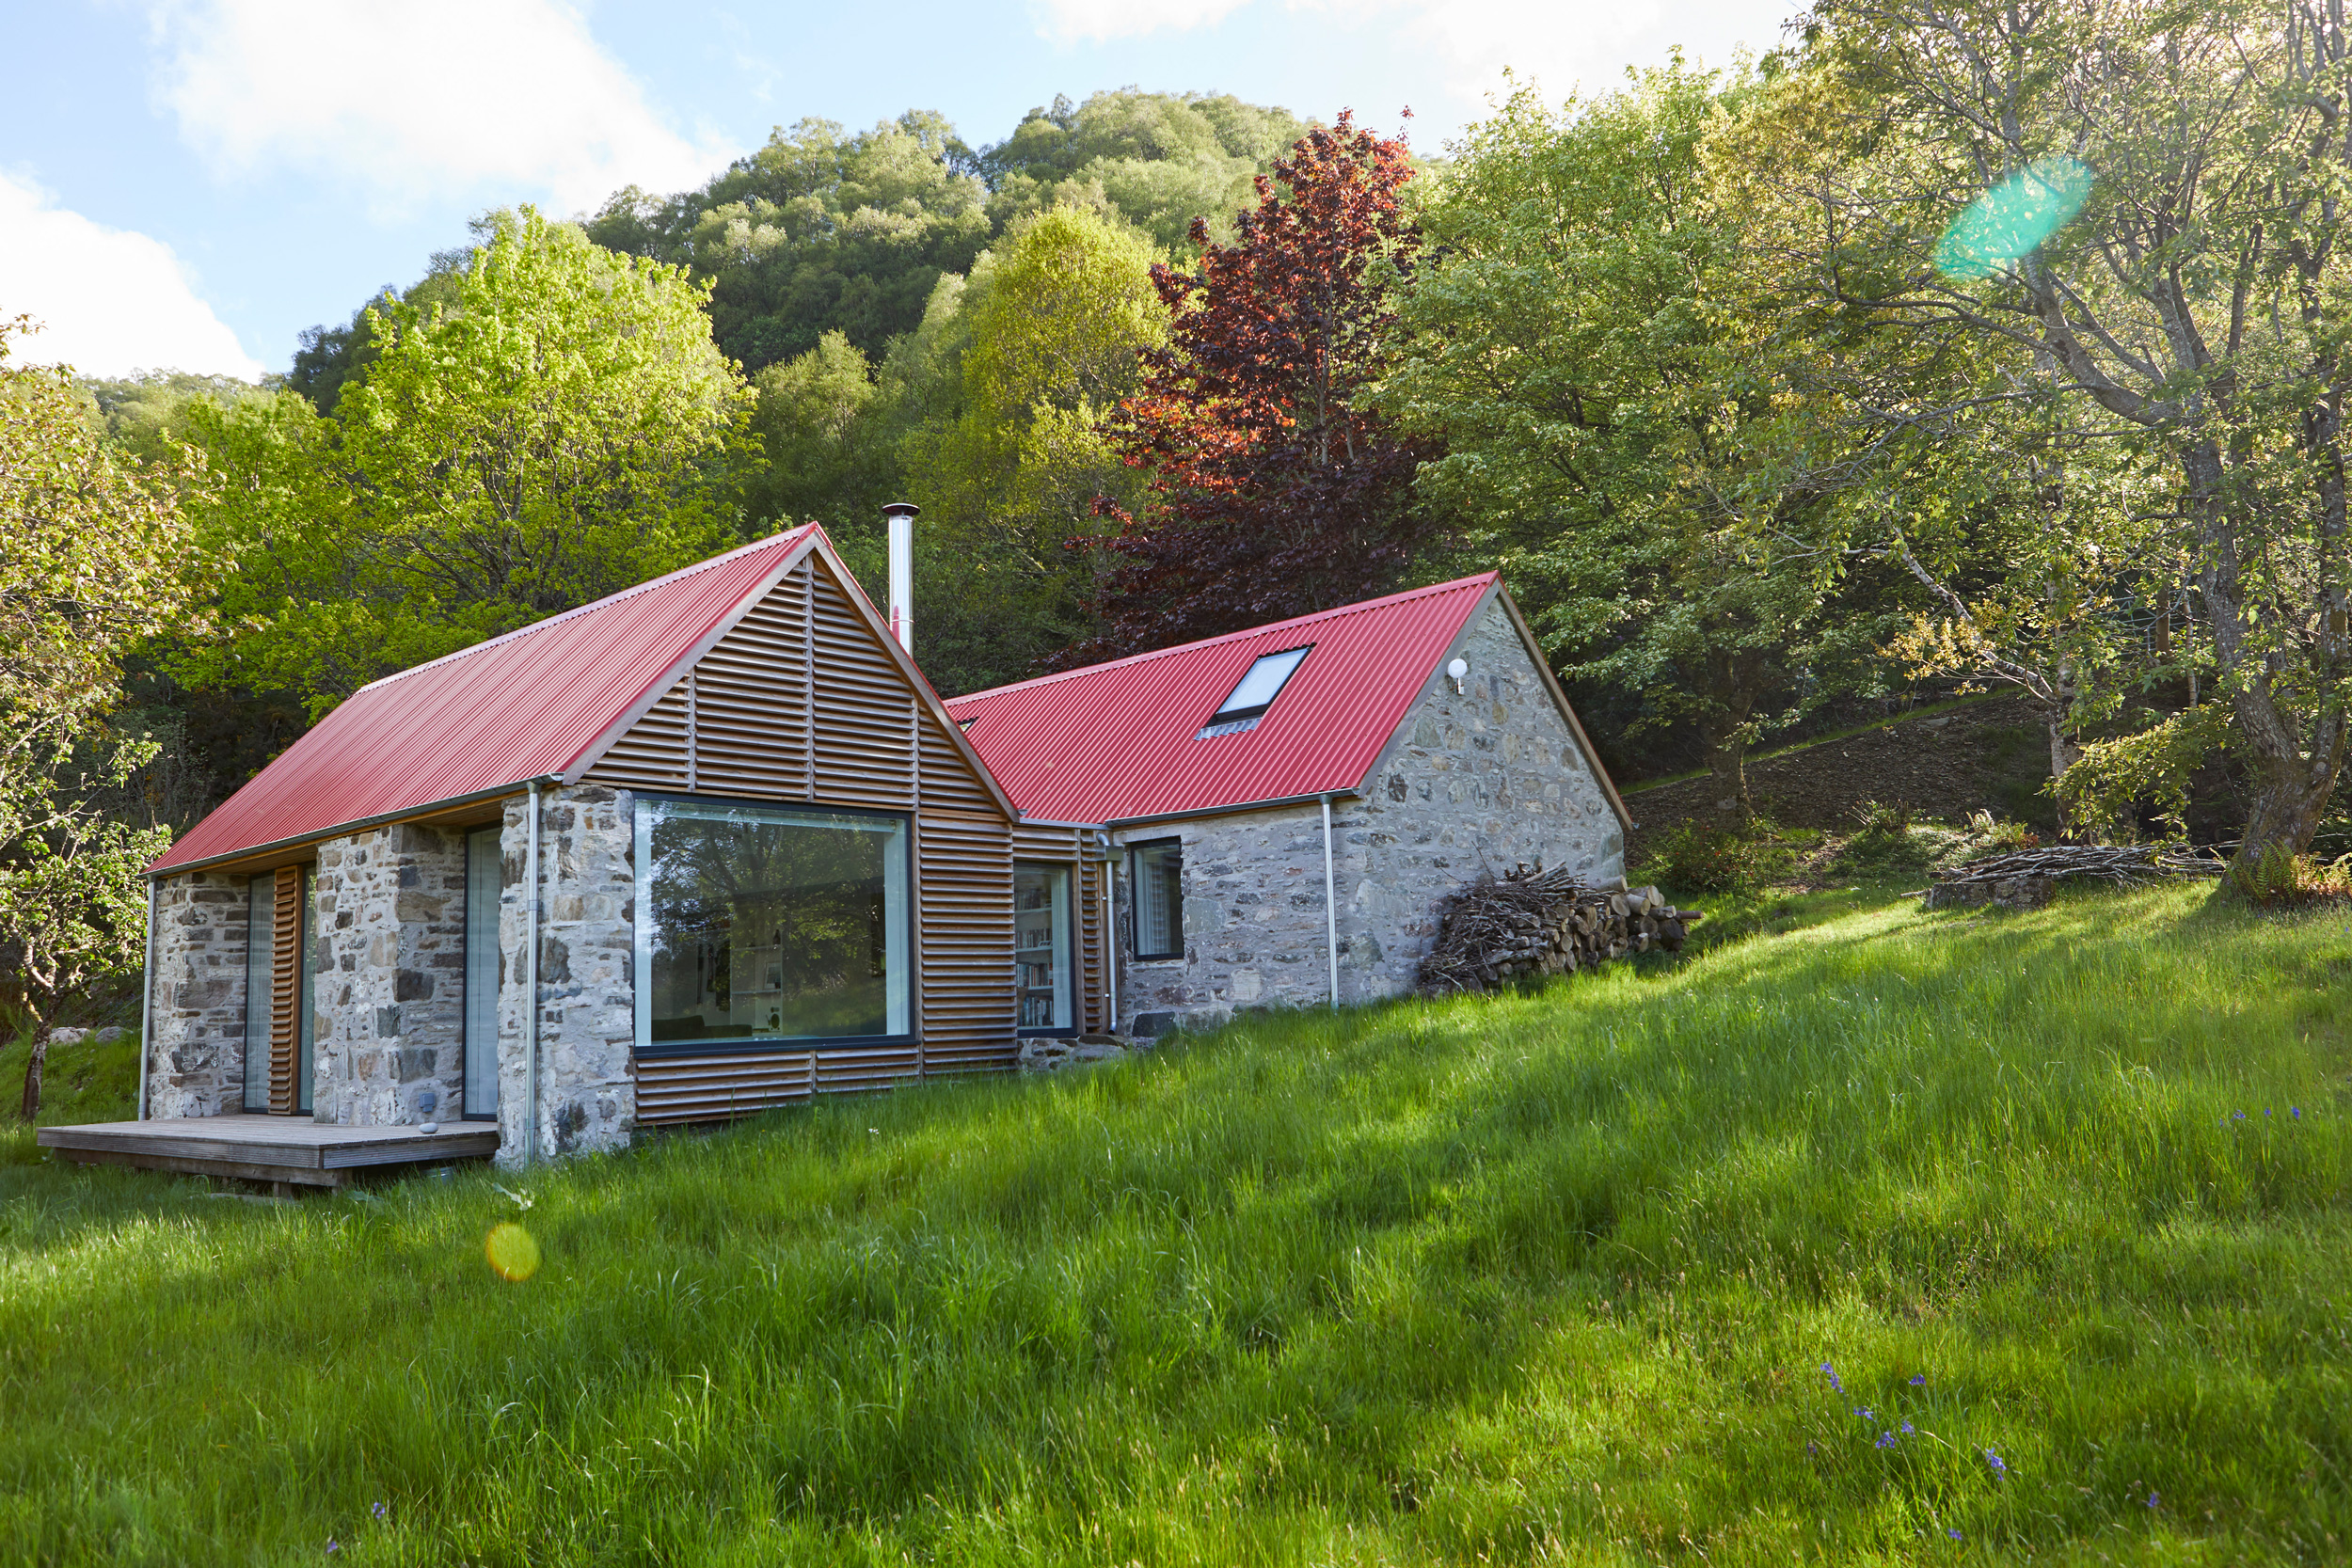 Sustainable Cottage With GreenCoatR Steel Nominated For RIBA House